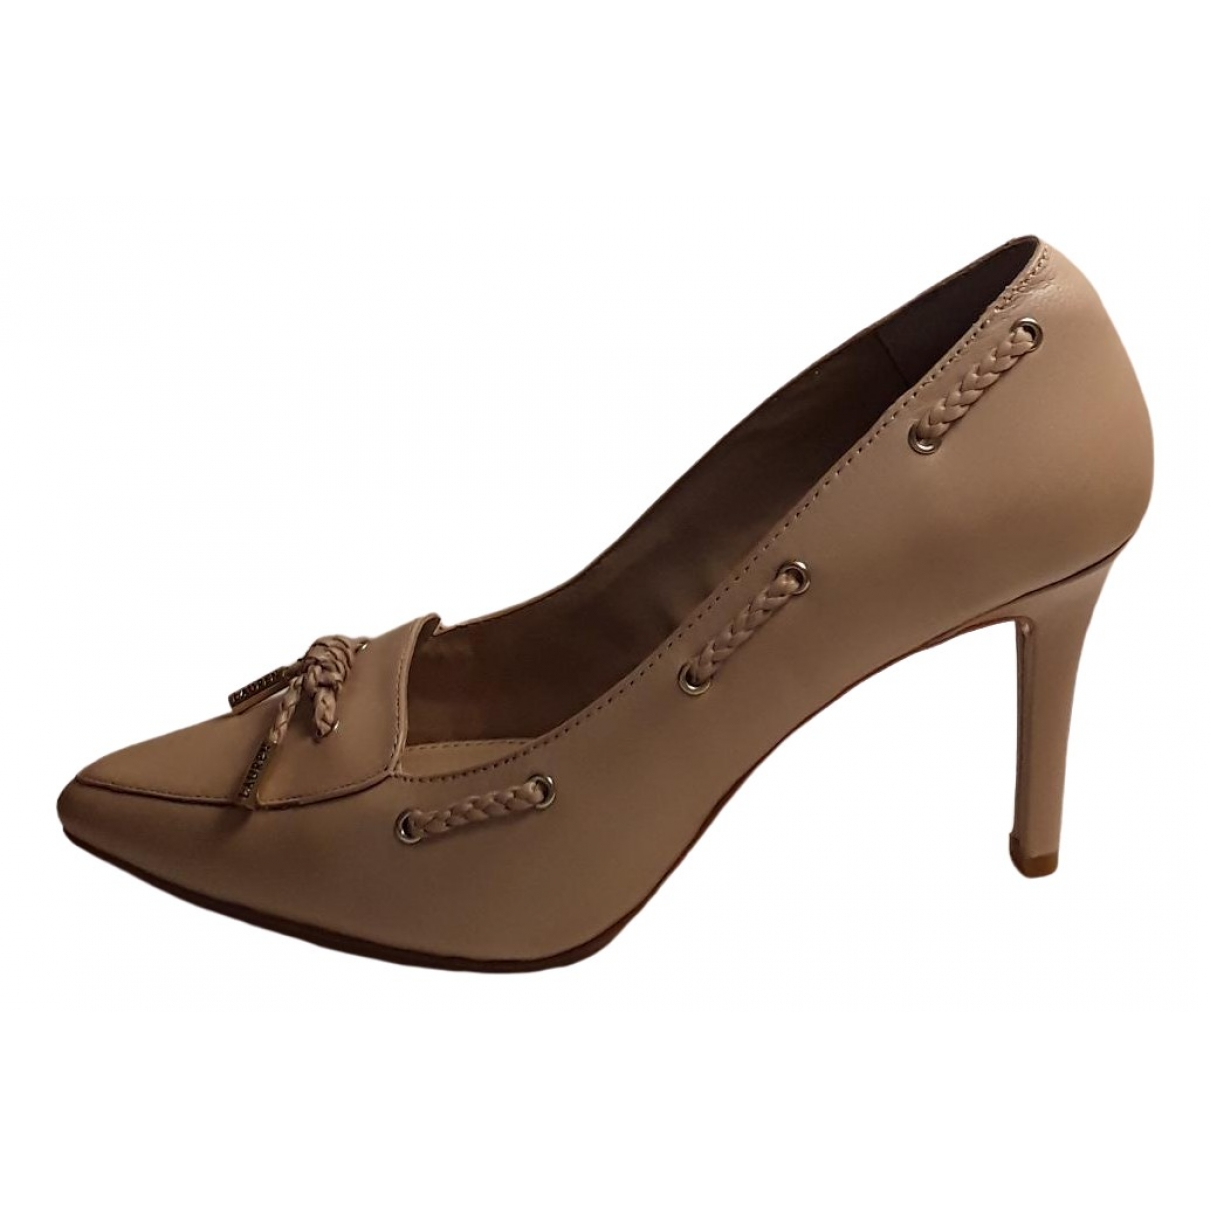 Ralph Lauren \N Pumps in  Beige Leder